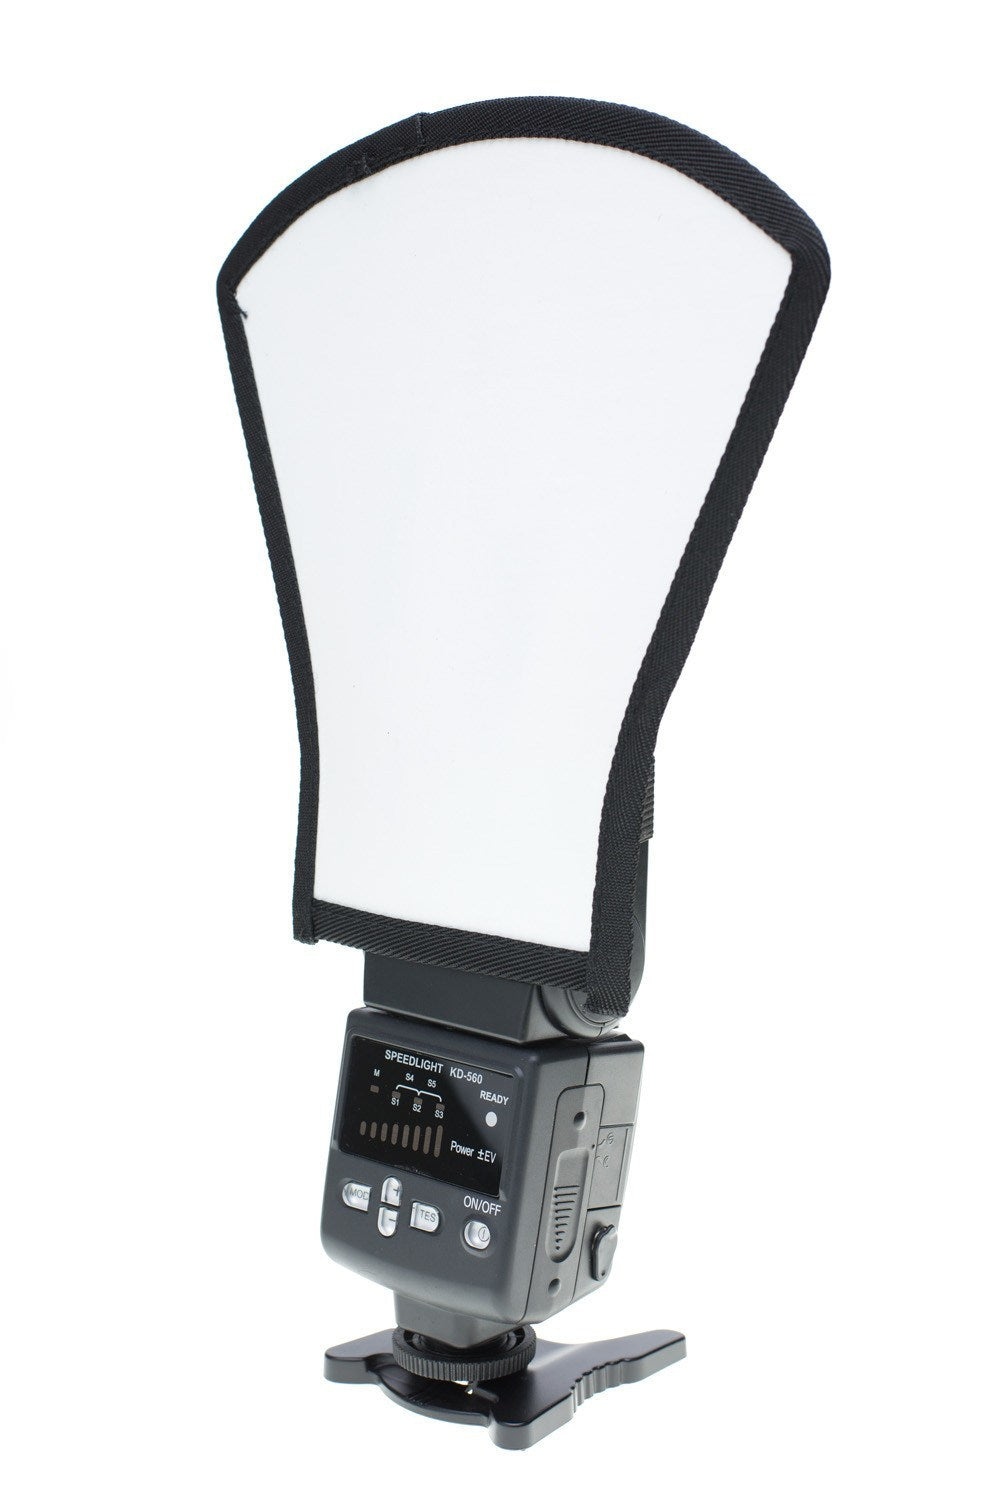 StudioPRO Two Side Flash Diffuser Reflector Silver/White For Speedlite -  - 2